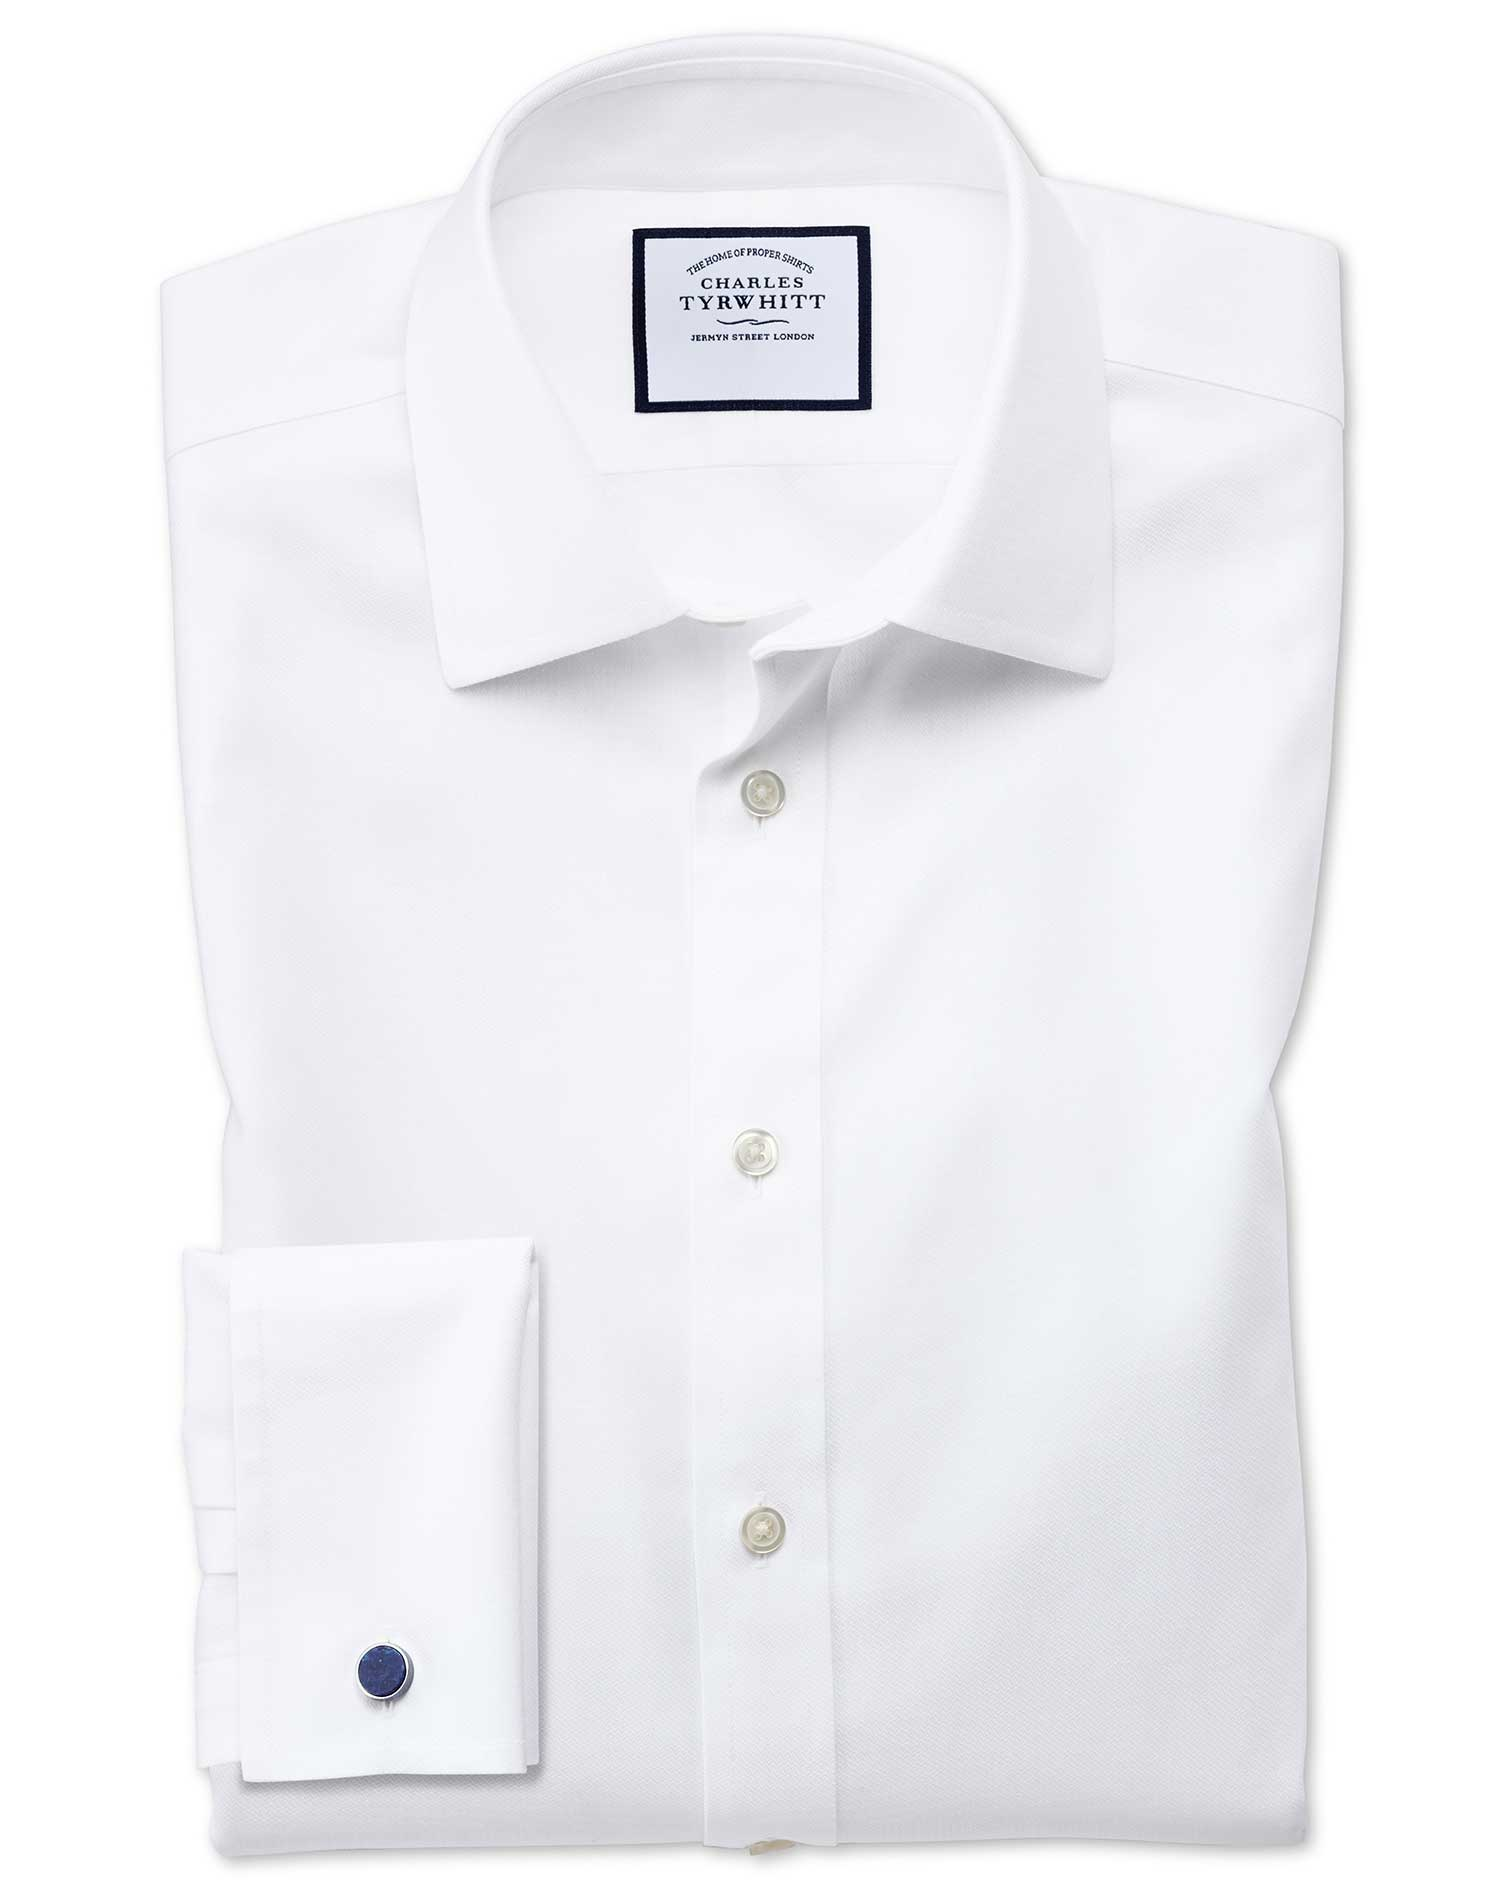 Extra Slim Fit Non-Iron Step Weave White Cotton Formal Shirt Single Cuff Size 15.5/32 by Charles Tyr